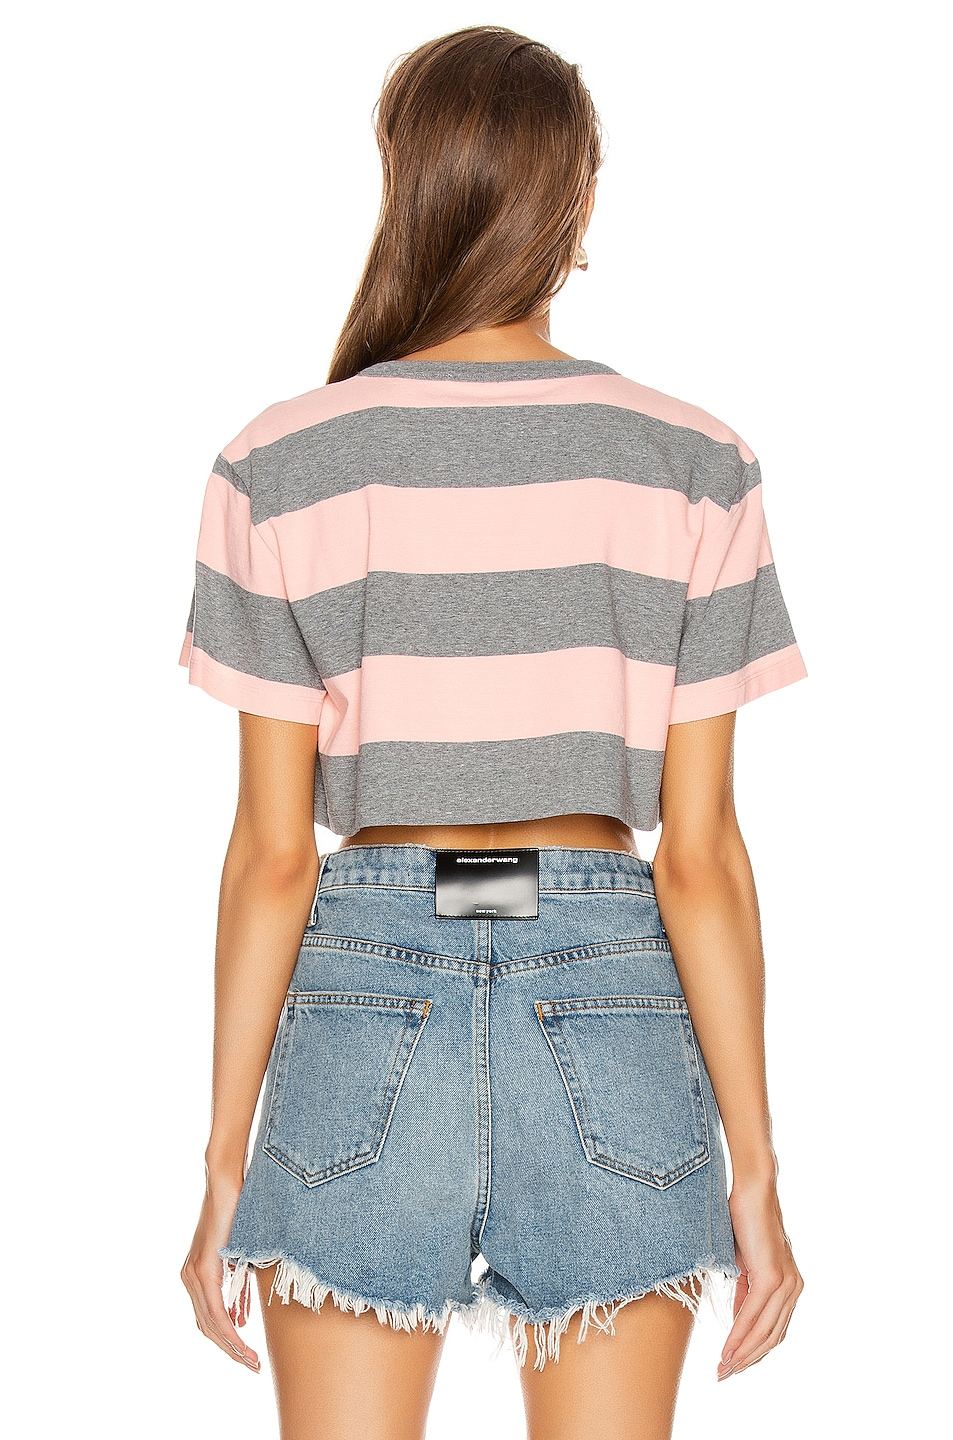 Image 4 of T by Alexander Wang Wash and Go Wide Stripe Crop in Charcoal & Blush